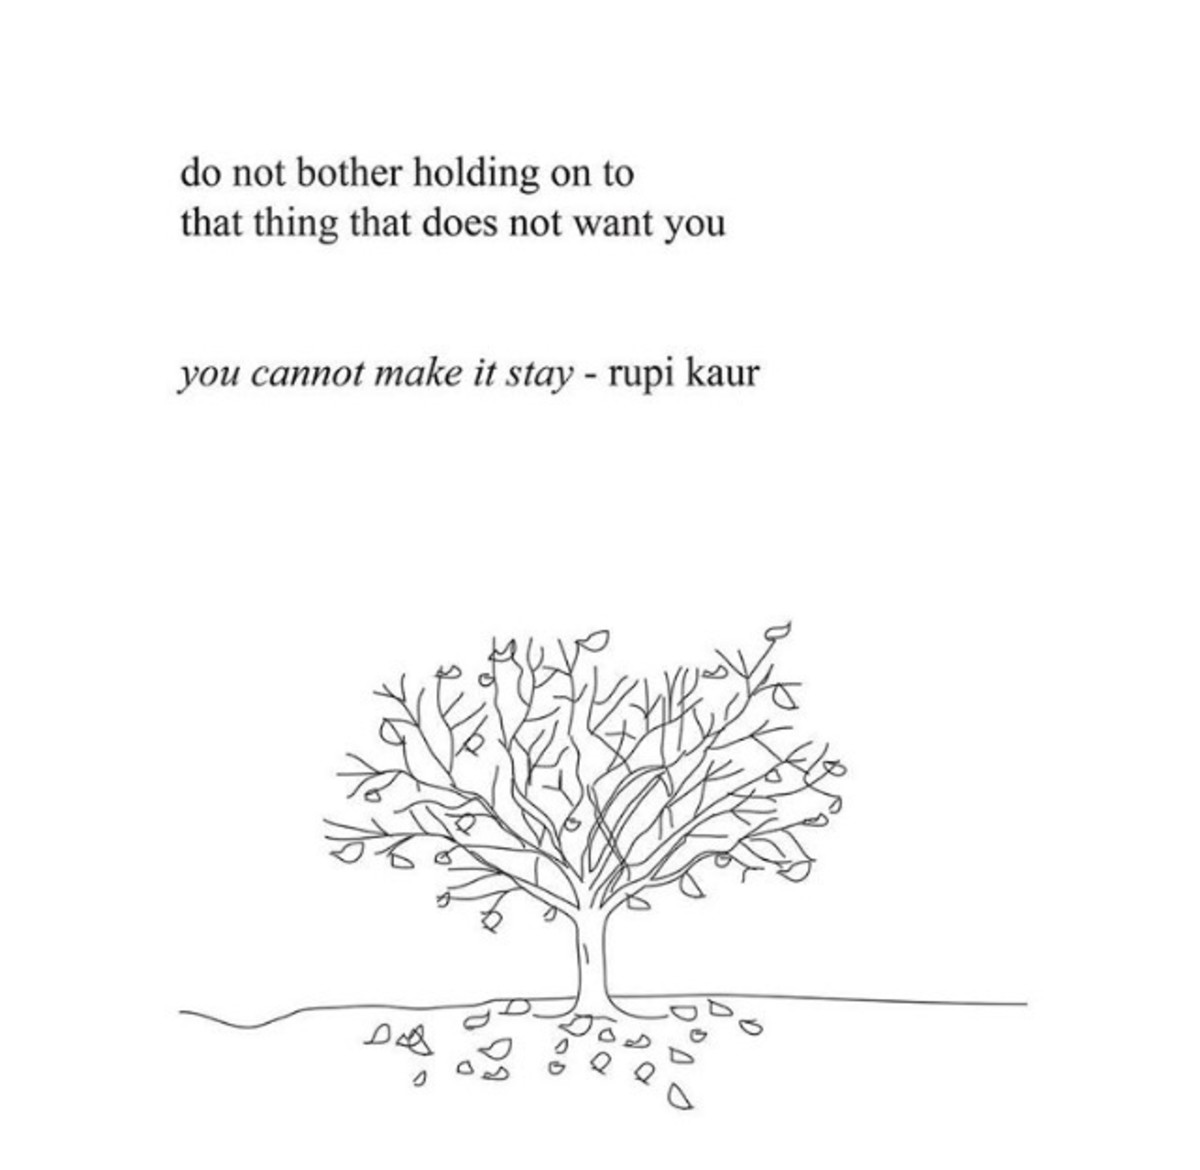 you cannot make it stay - rupi kaur